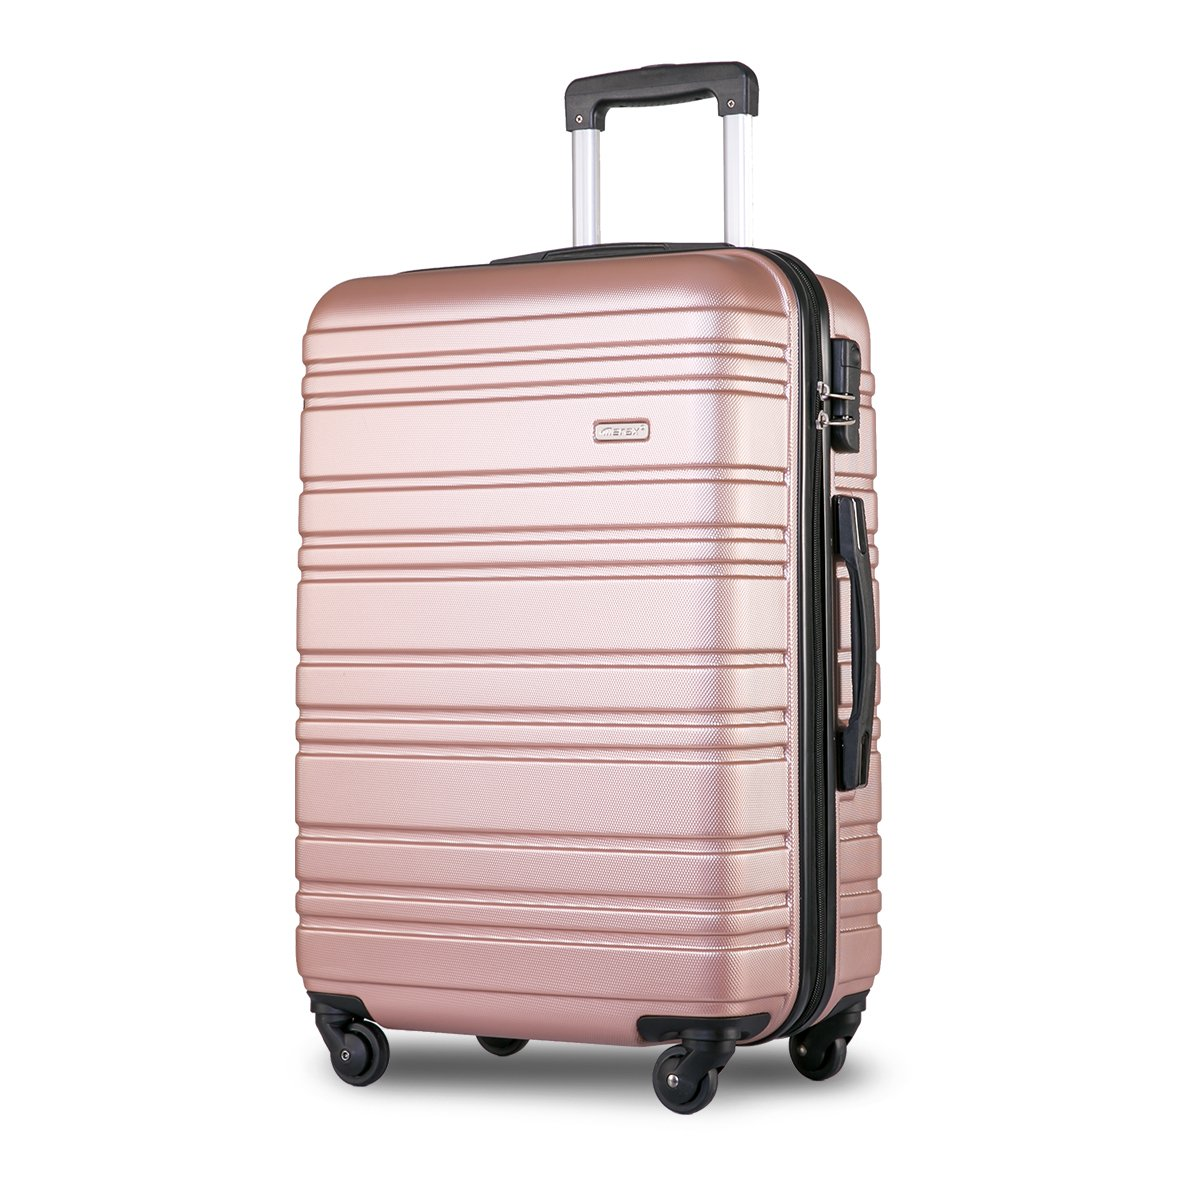 Lightweight Hard Shell 4 Wheels Travel Trolley Suitcase Luggage Set Holdall Cabin Case (20 inches, Rose)